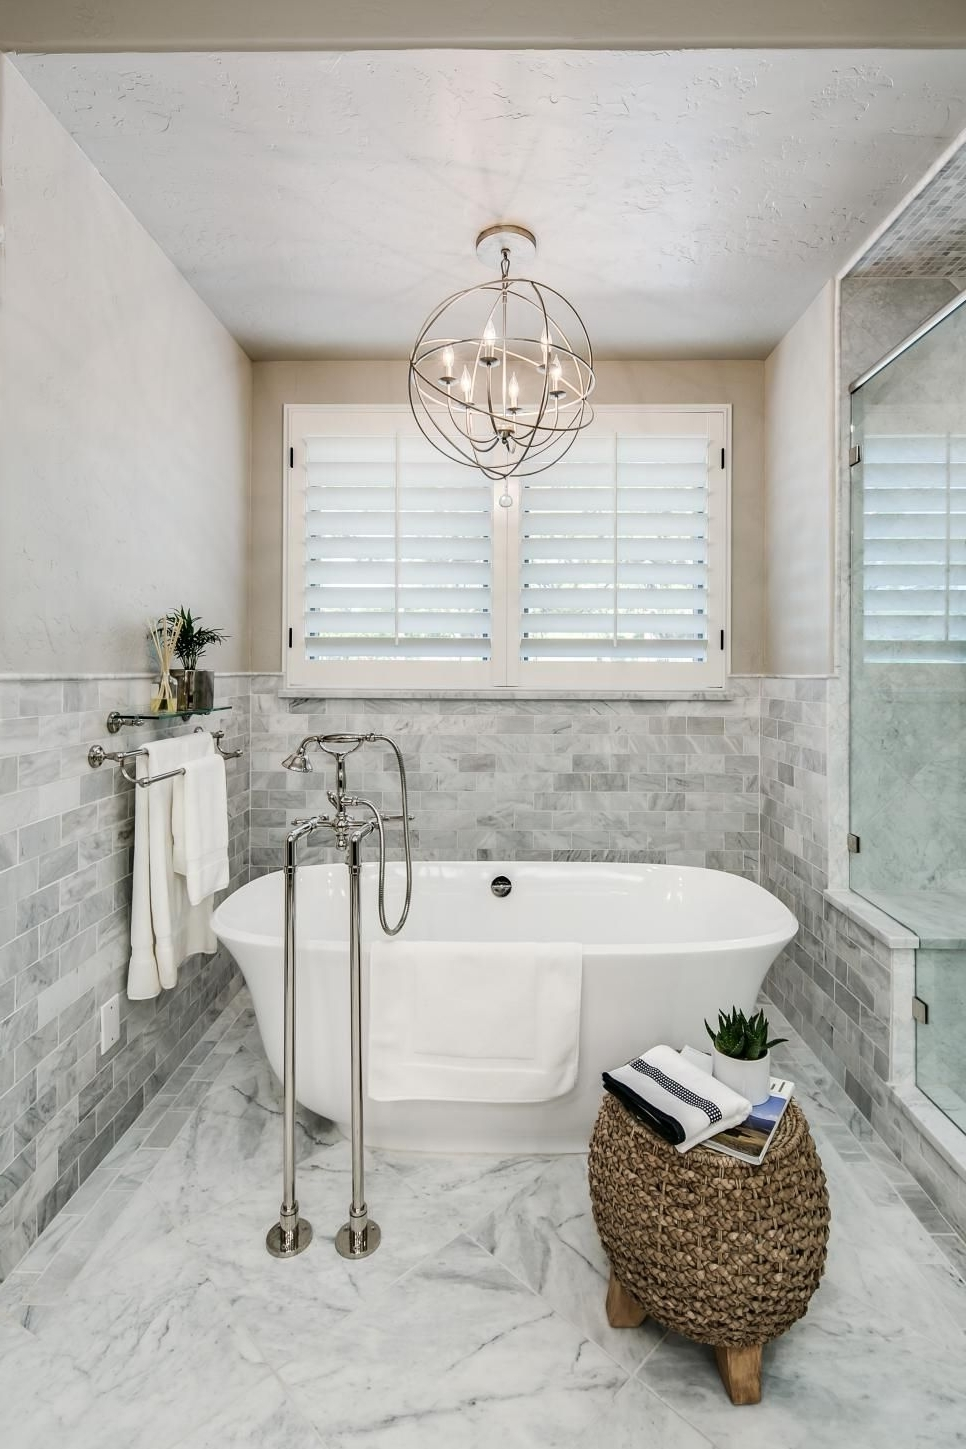 Most Recent Modern Bathroom Chandeliers Within A Metal Orb Chandelier Is Centered Above The Freestanding Tub In (View 12 of 15)